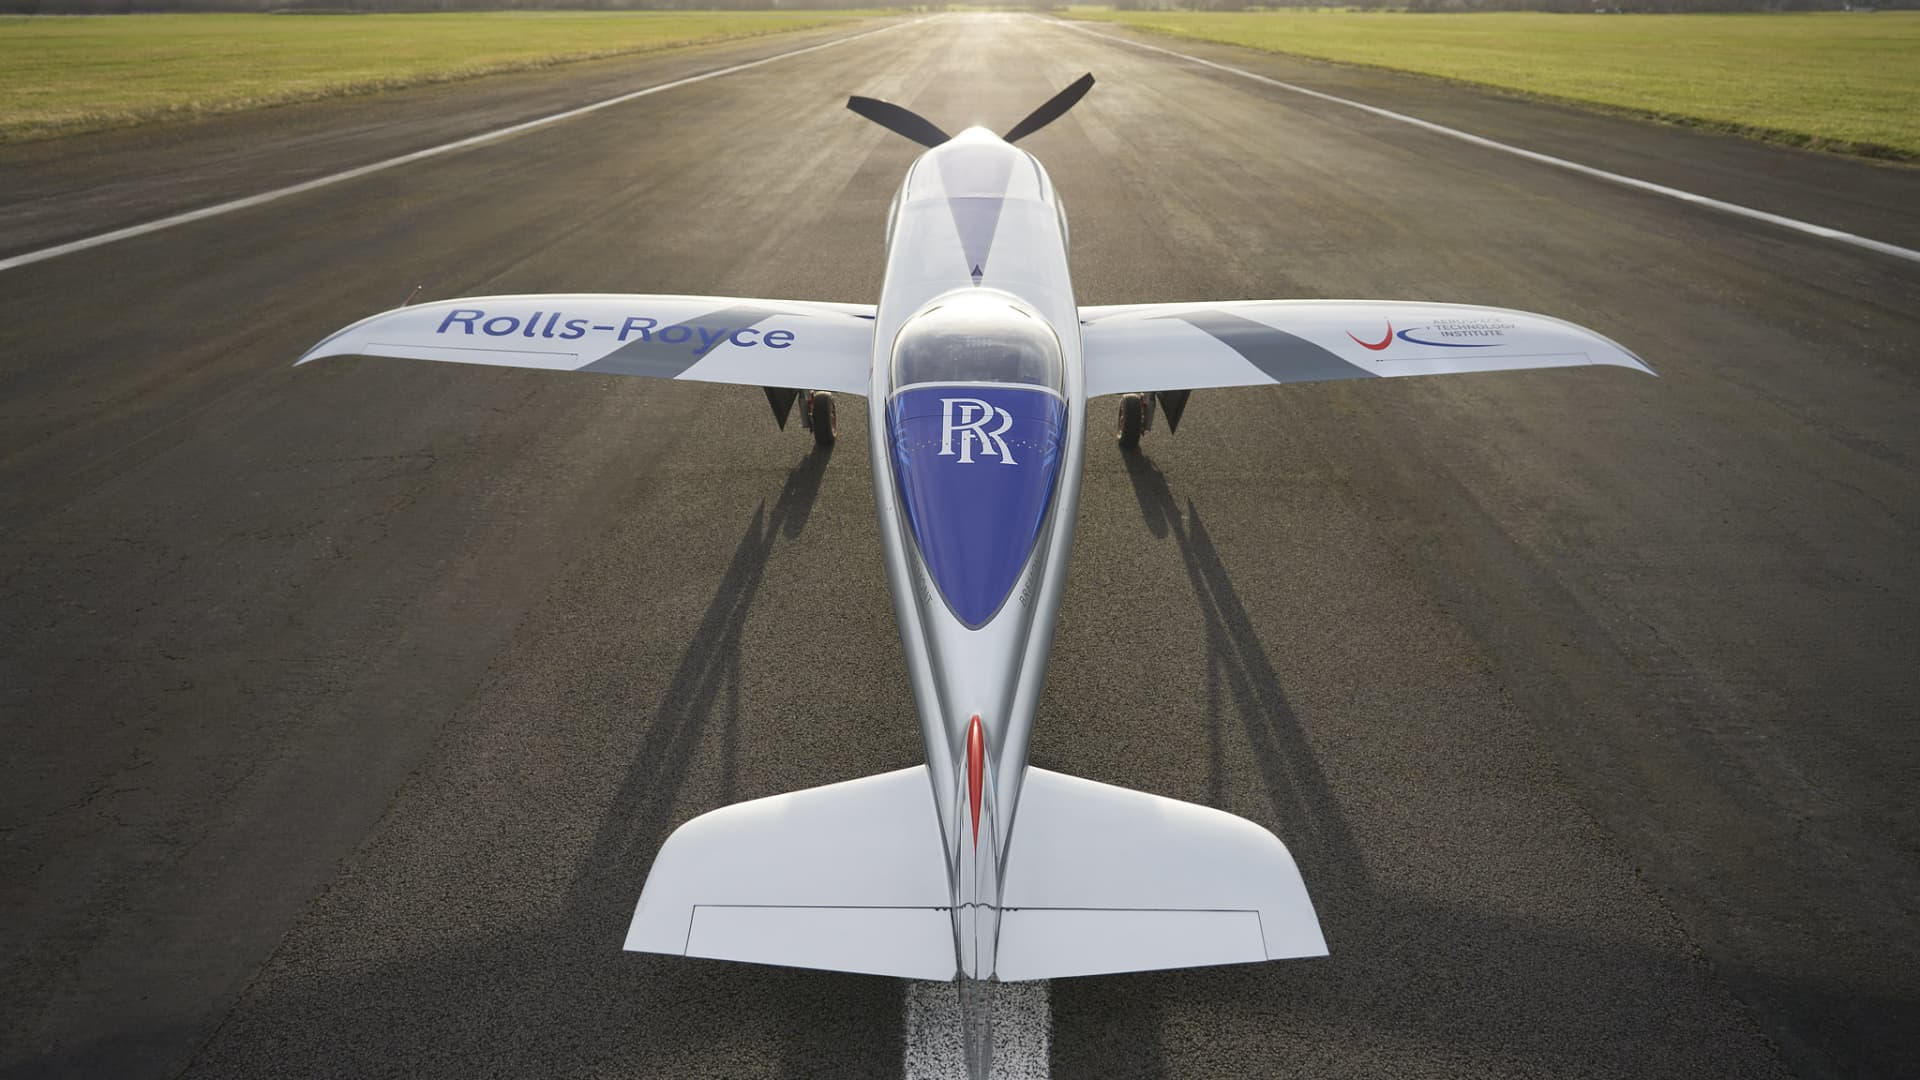 Rolls-Royce's all-electric Spirit of Innovation takes to the skies for the first time.